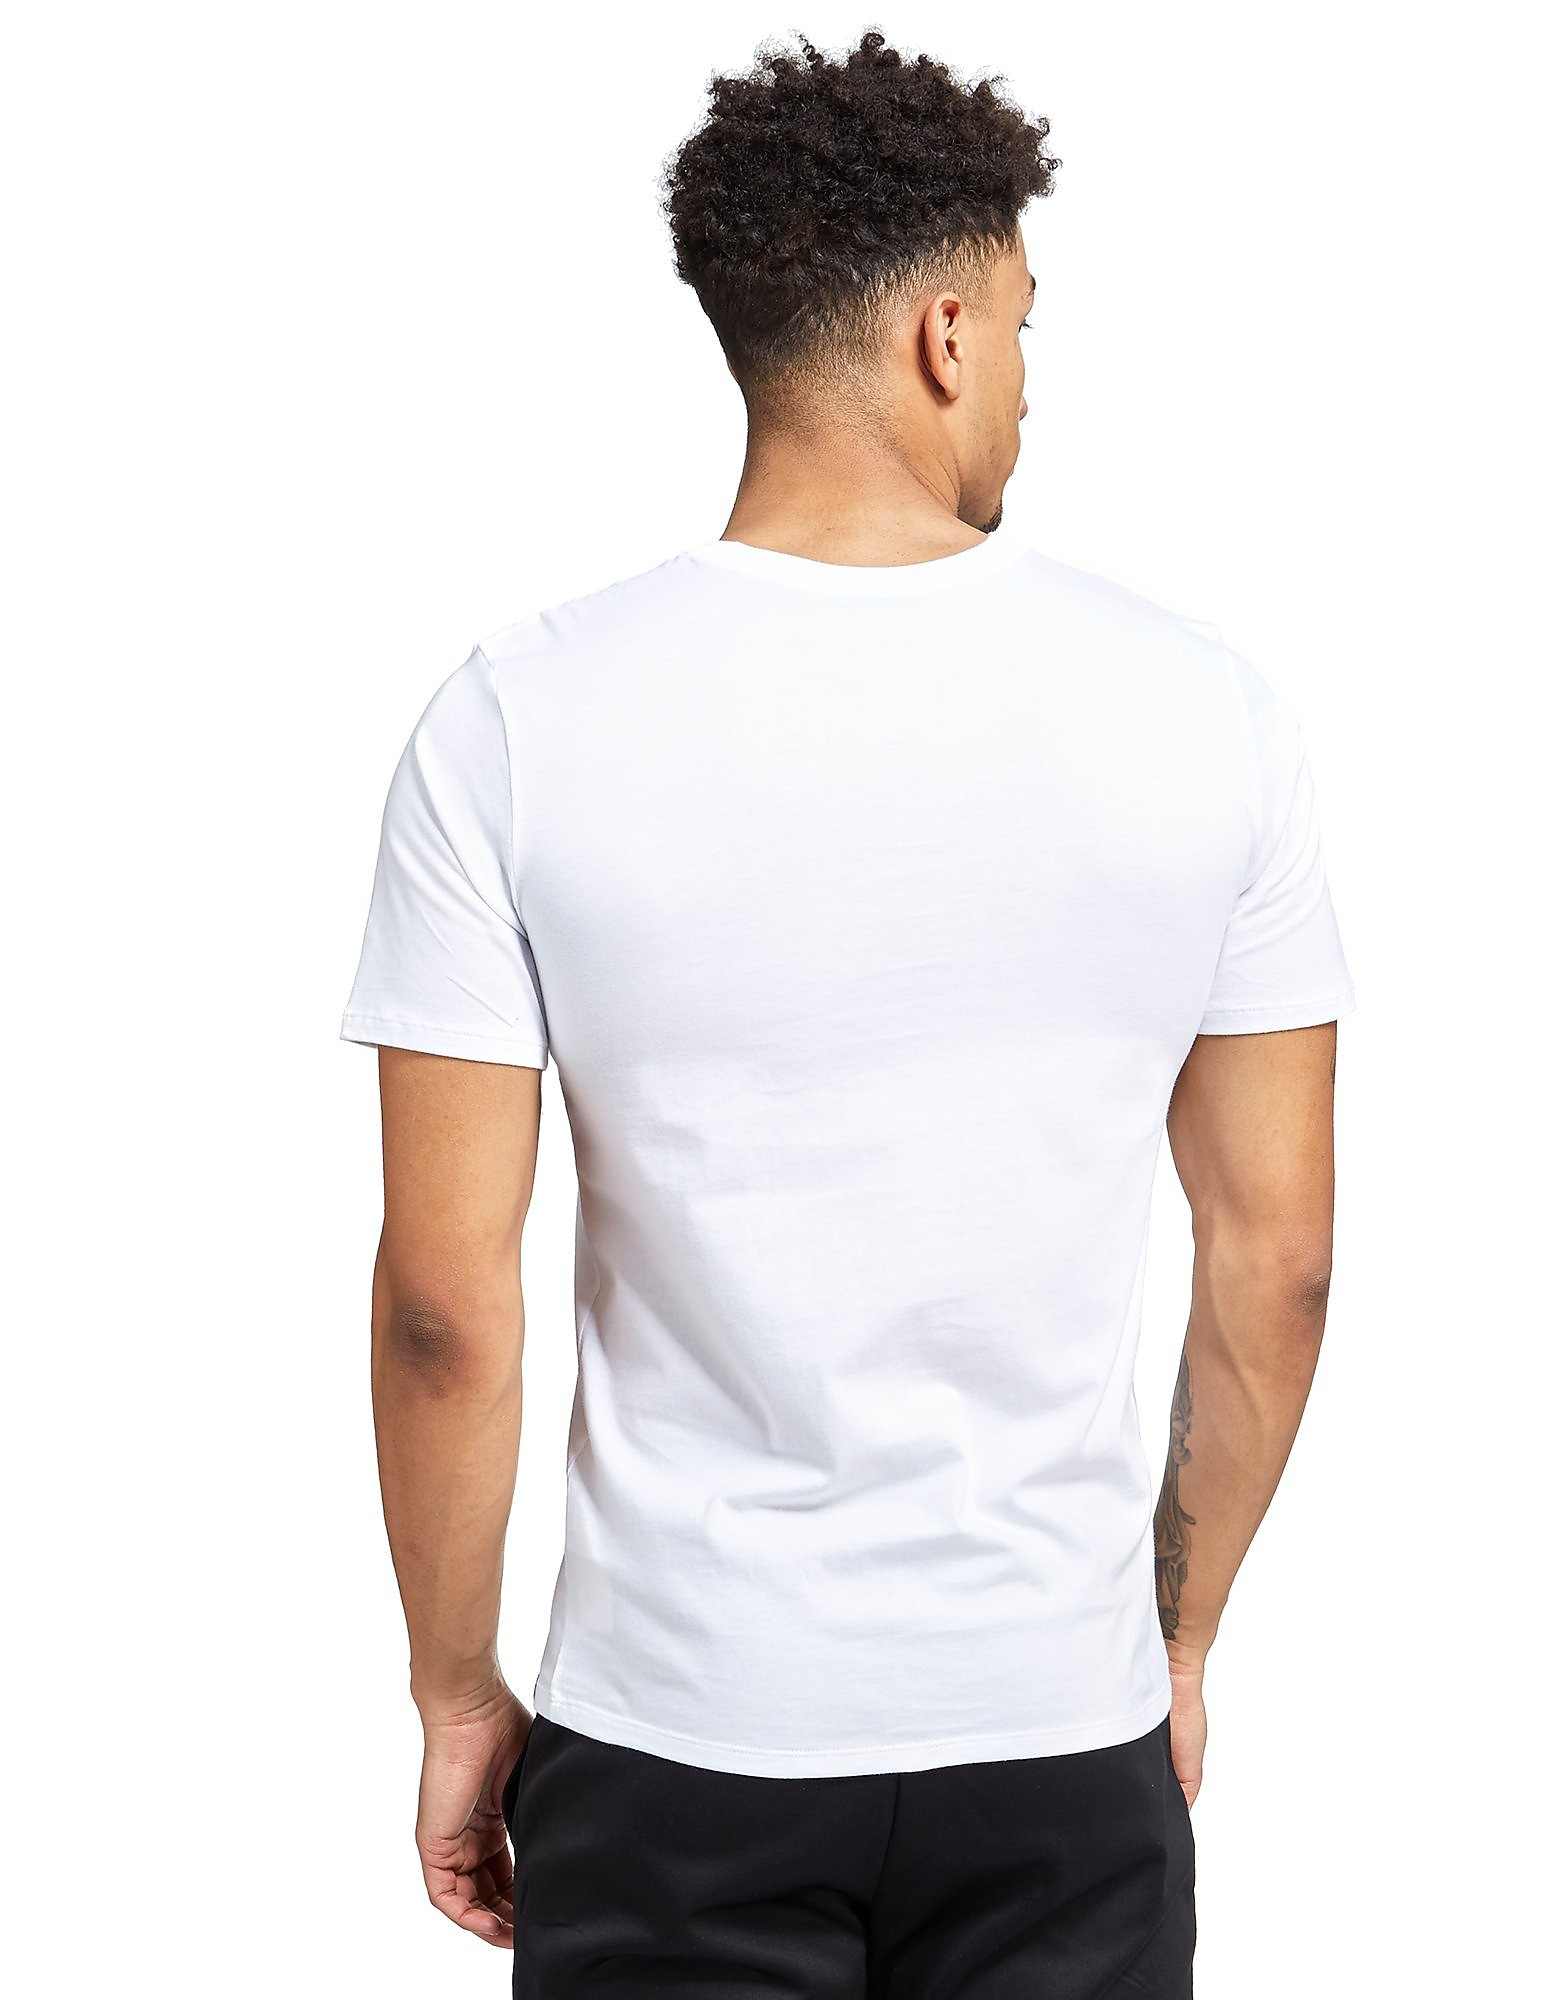 Jordan Stretched T-Shirt